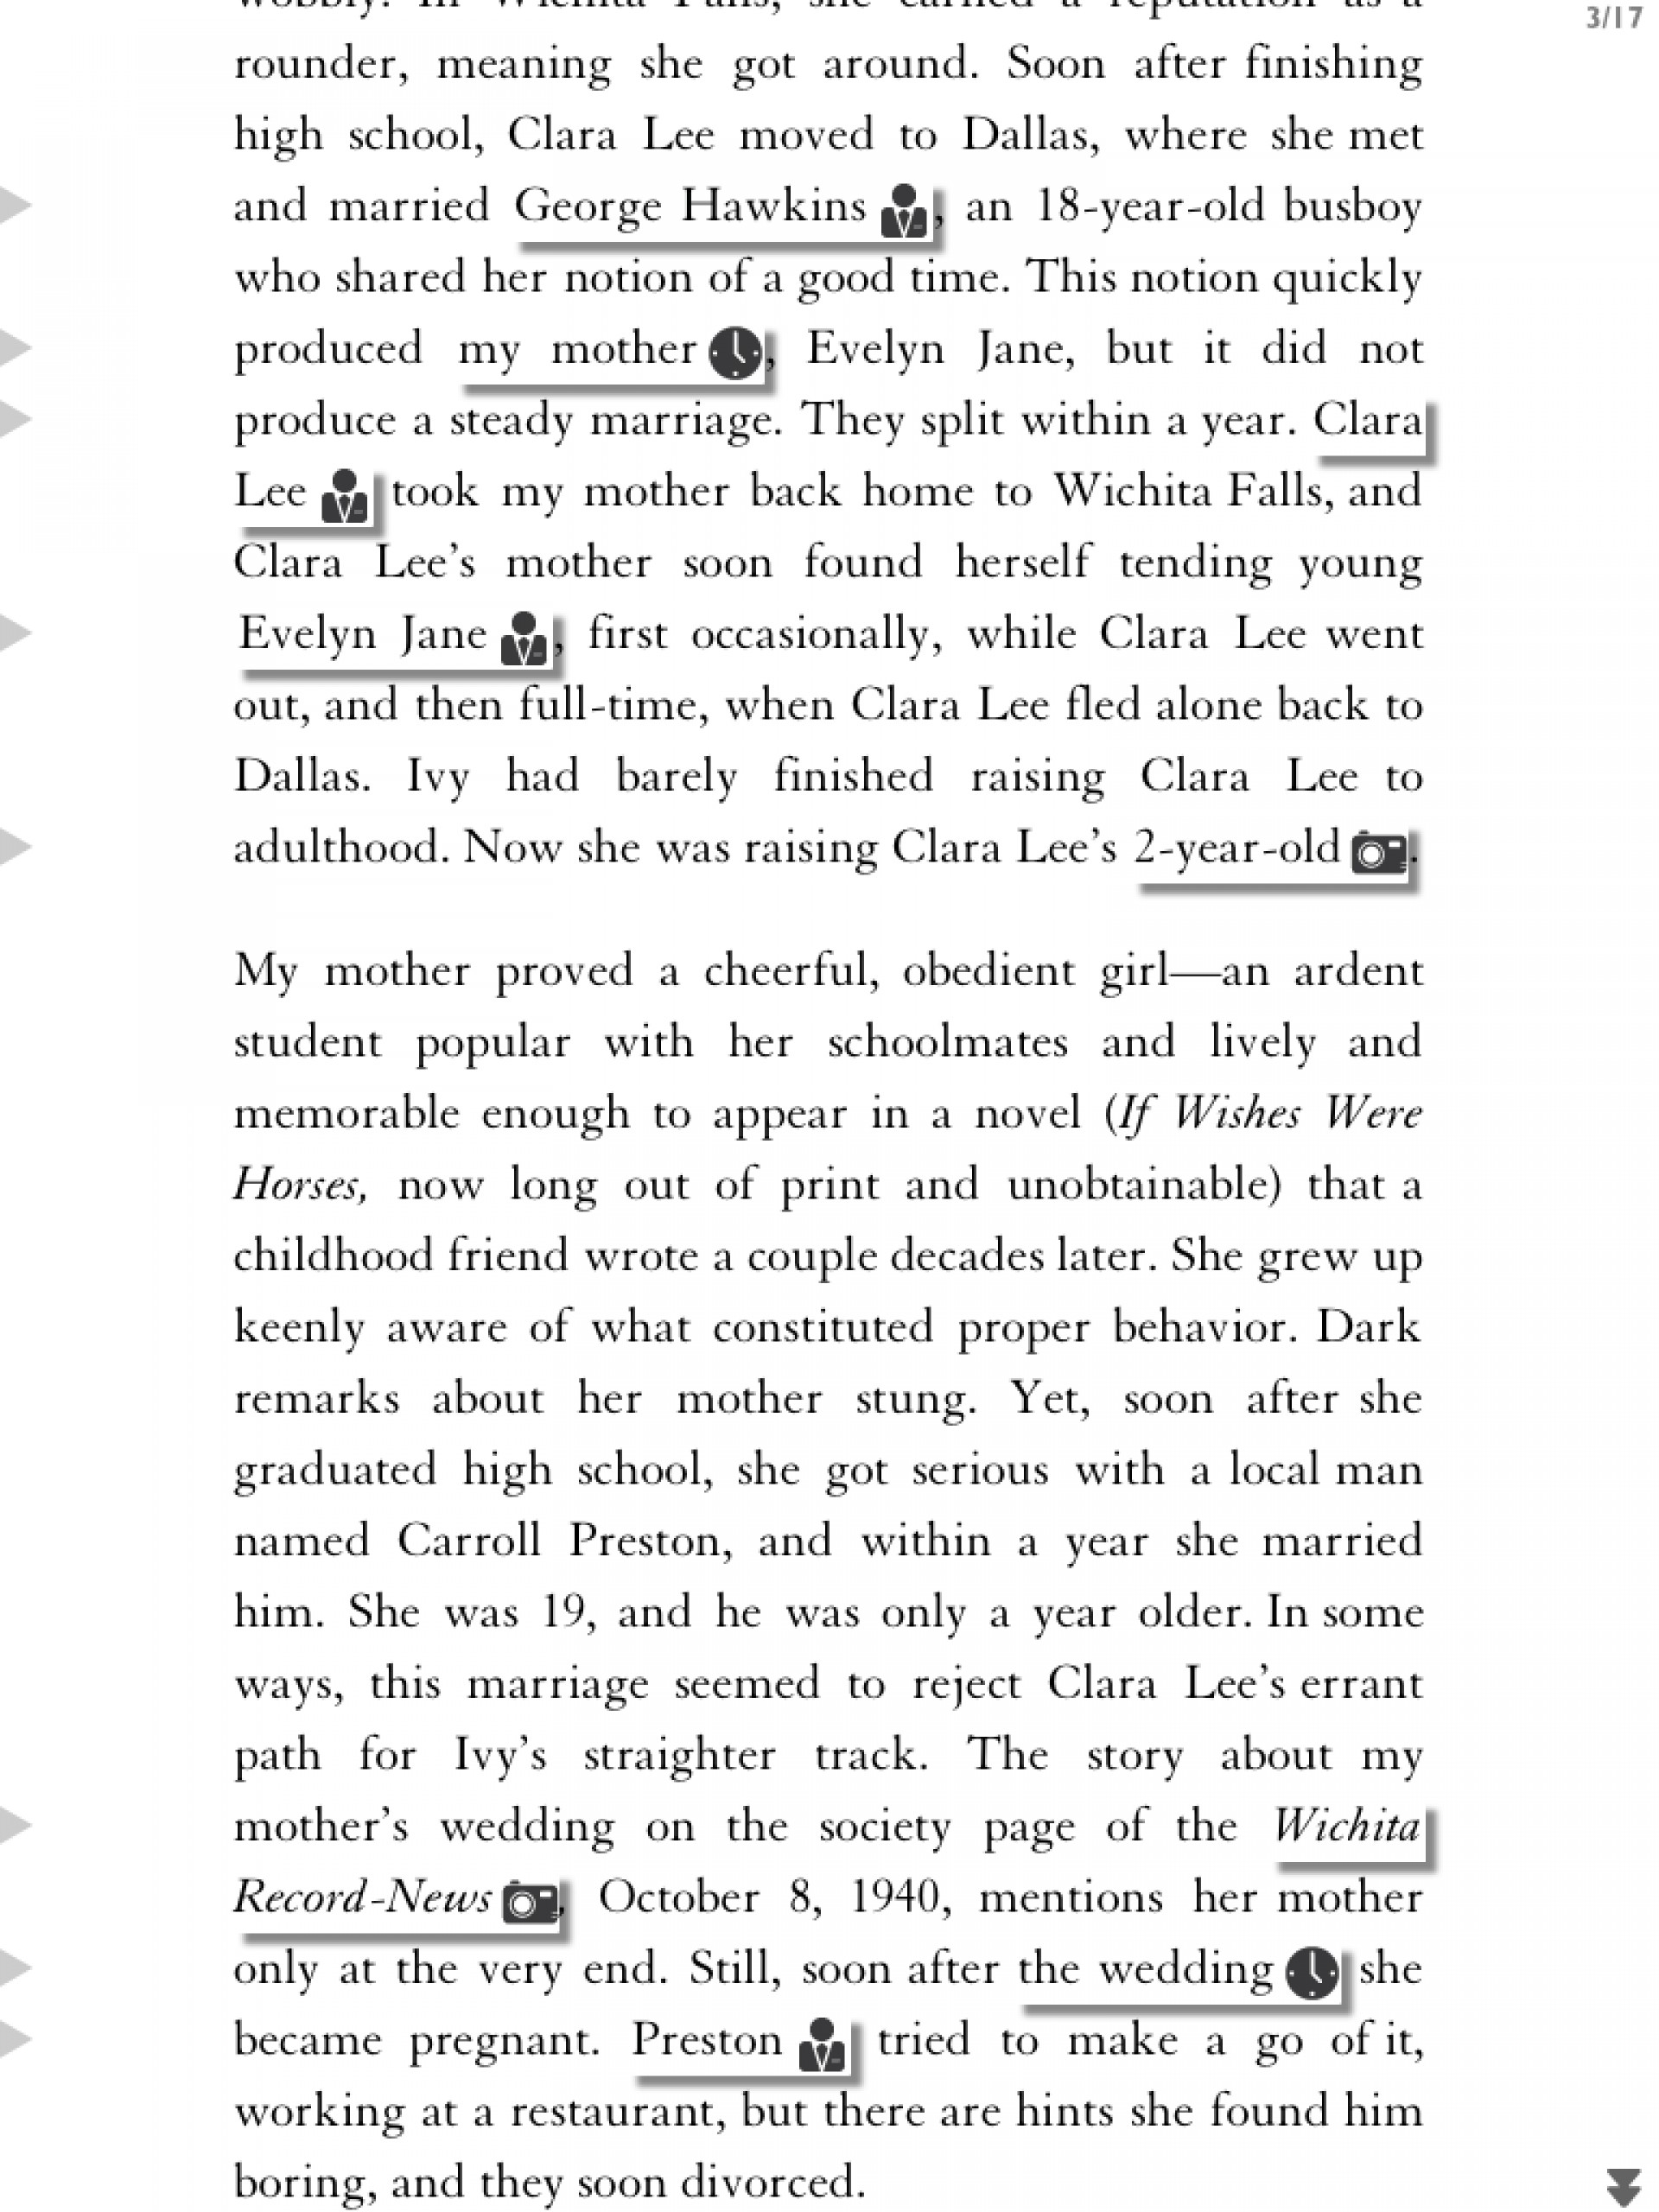 005 Essay My Father Hero Example On Fathermy About L Unusual Parents Superhero 1920